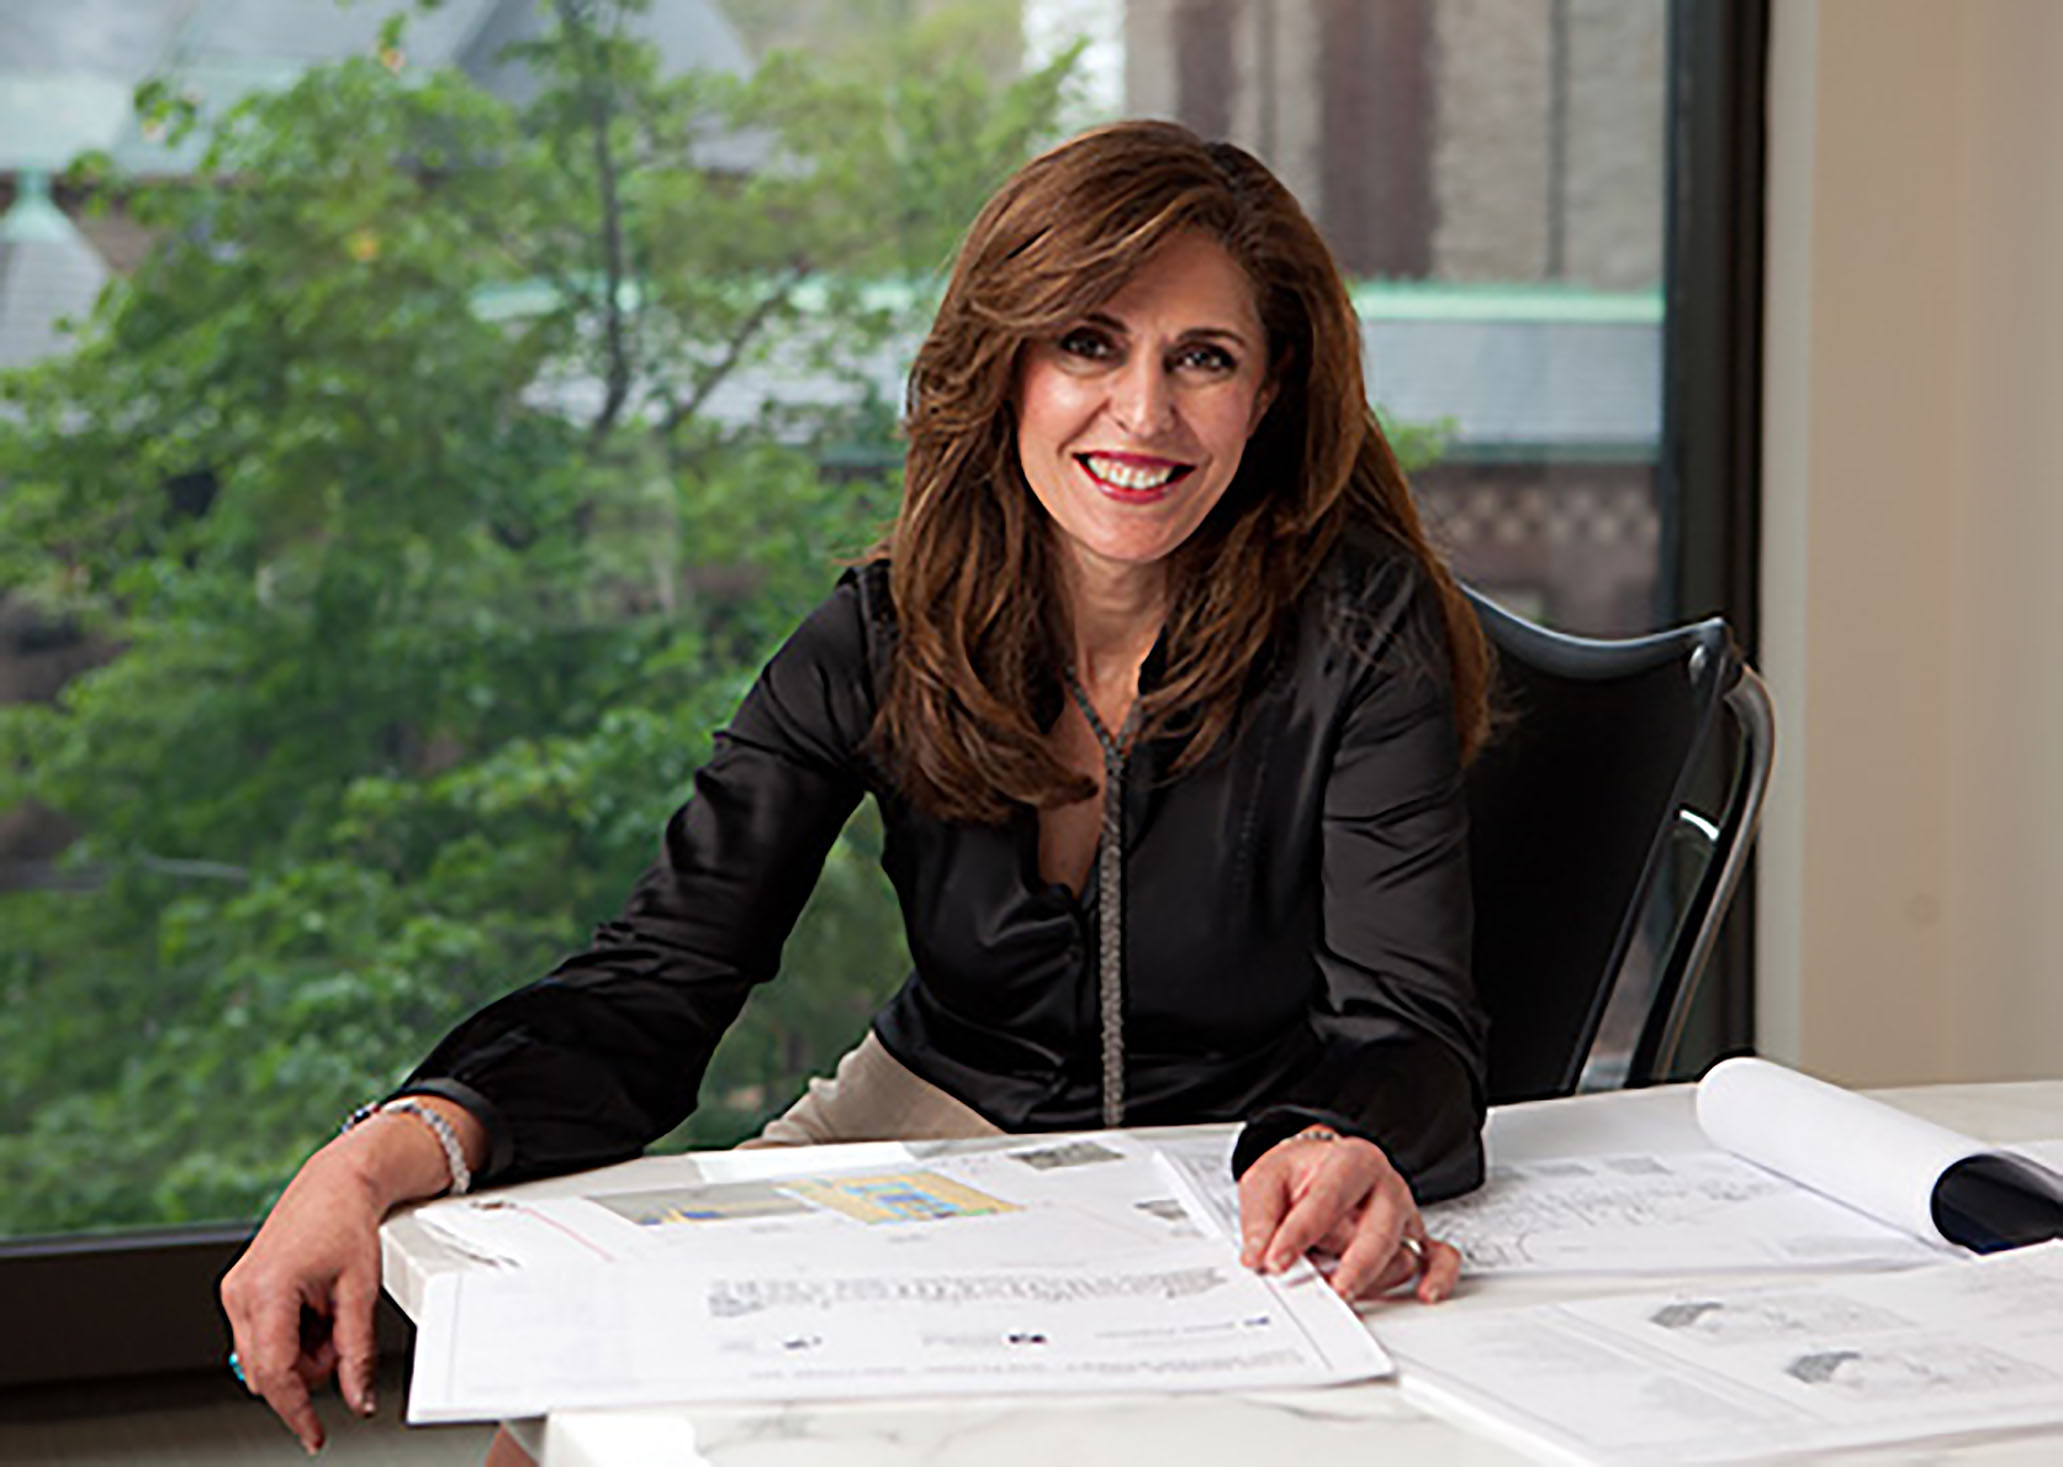 Sherry Niazmand is a principal and partner at Visnick & Caulfield